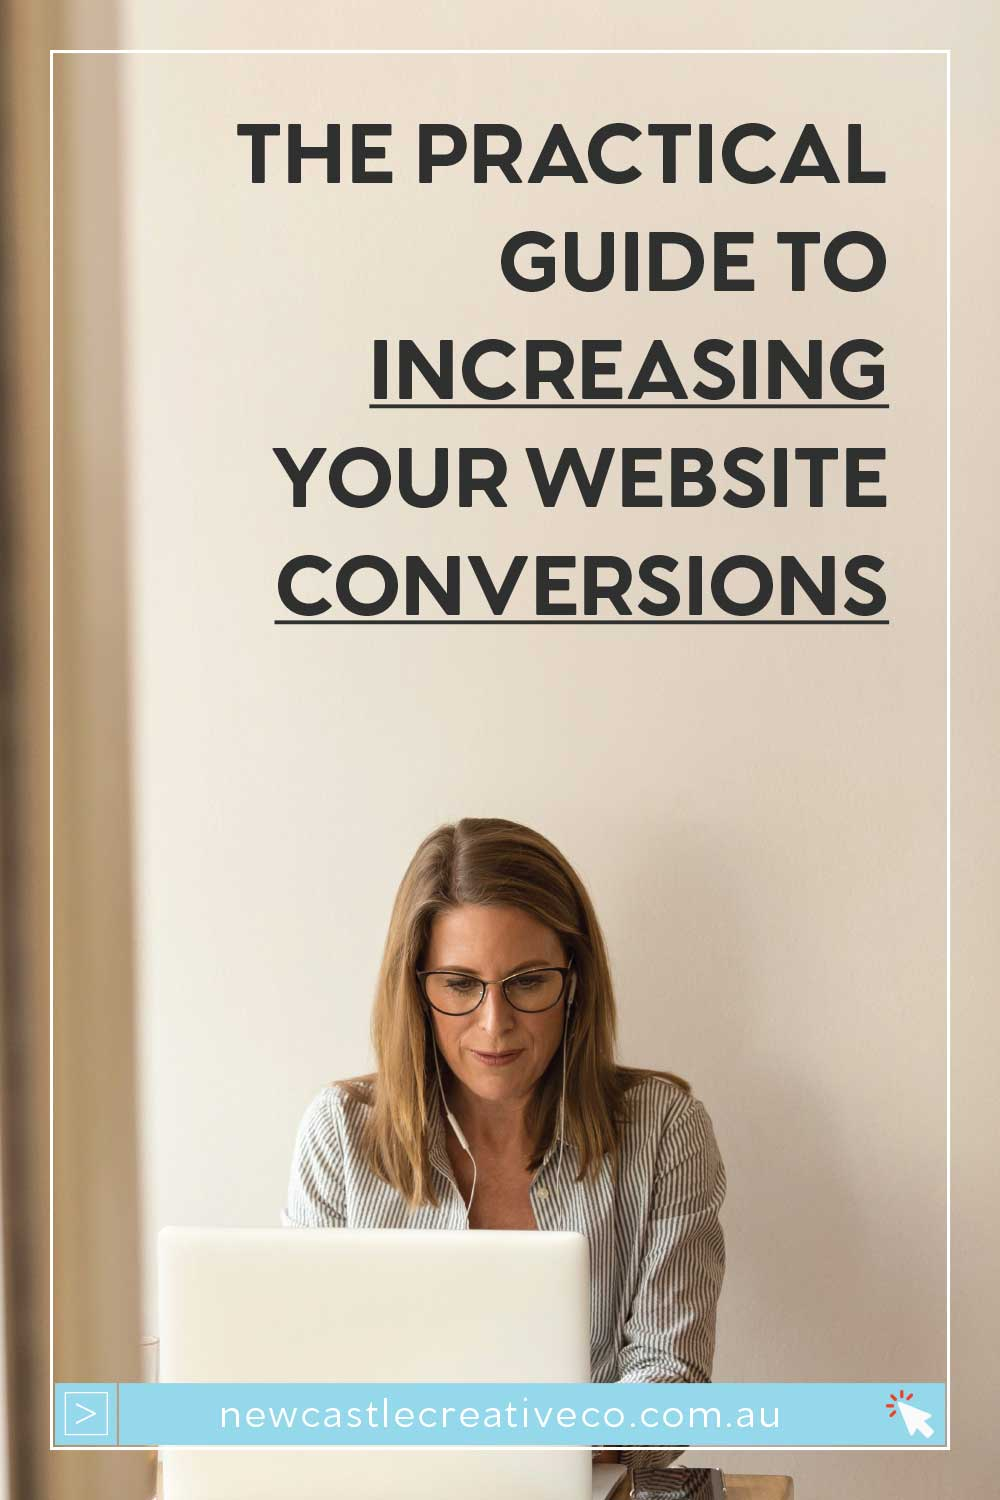 The practical guide to increasing your website conversions | Newcastle Creative Co